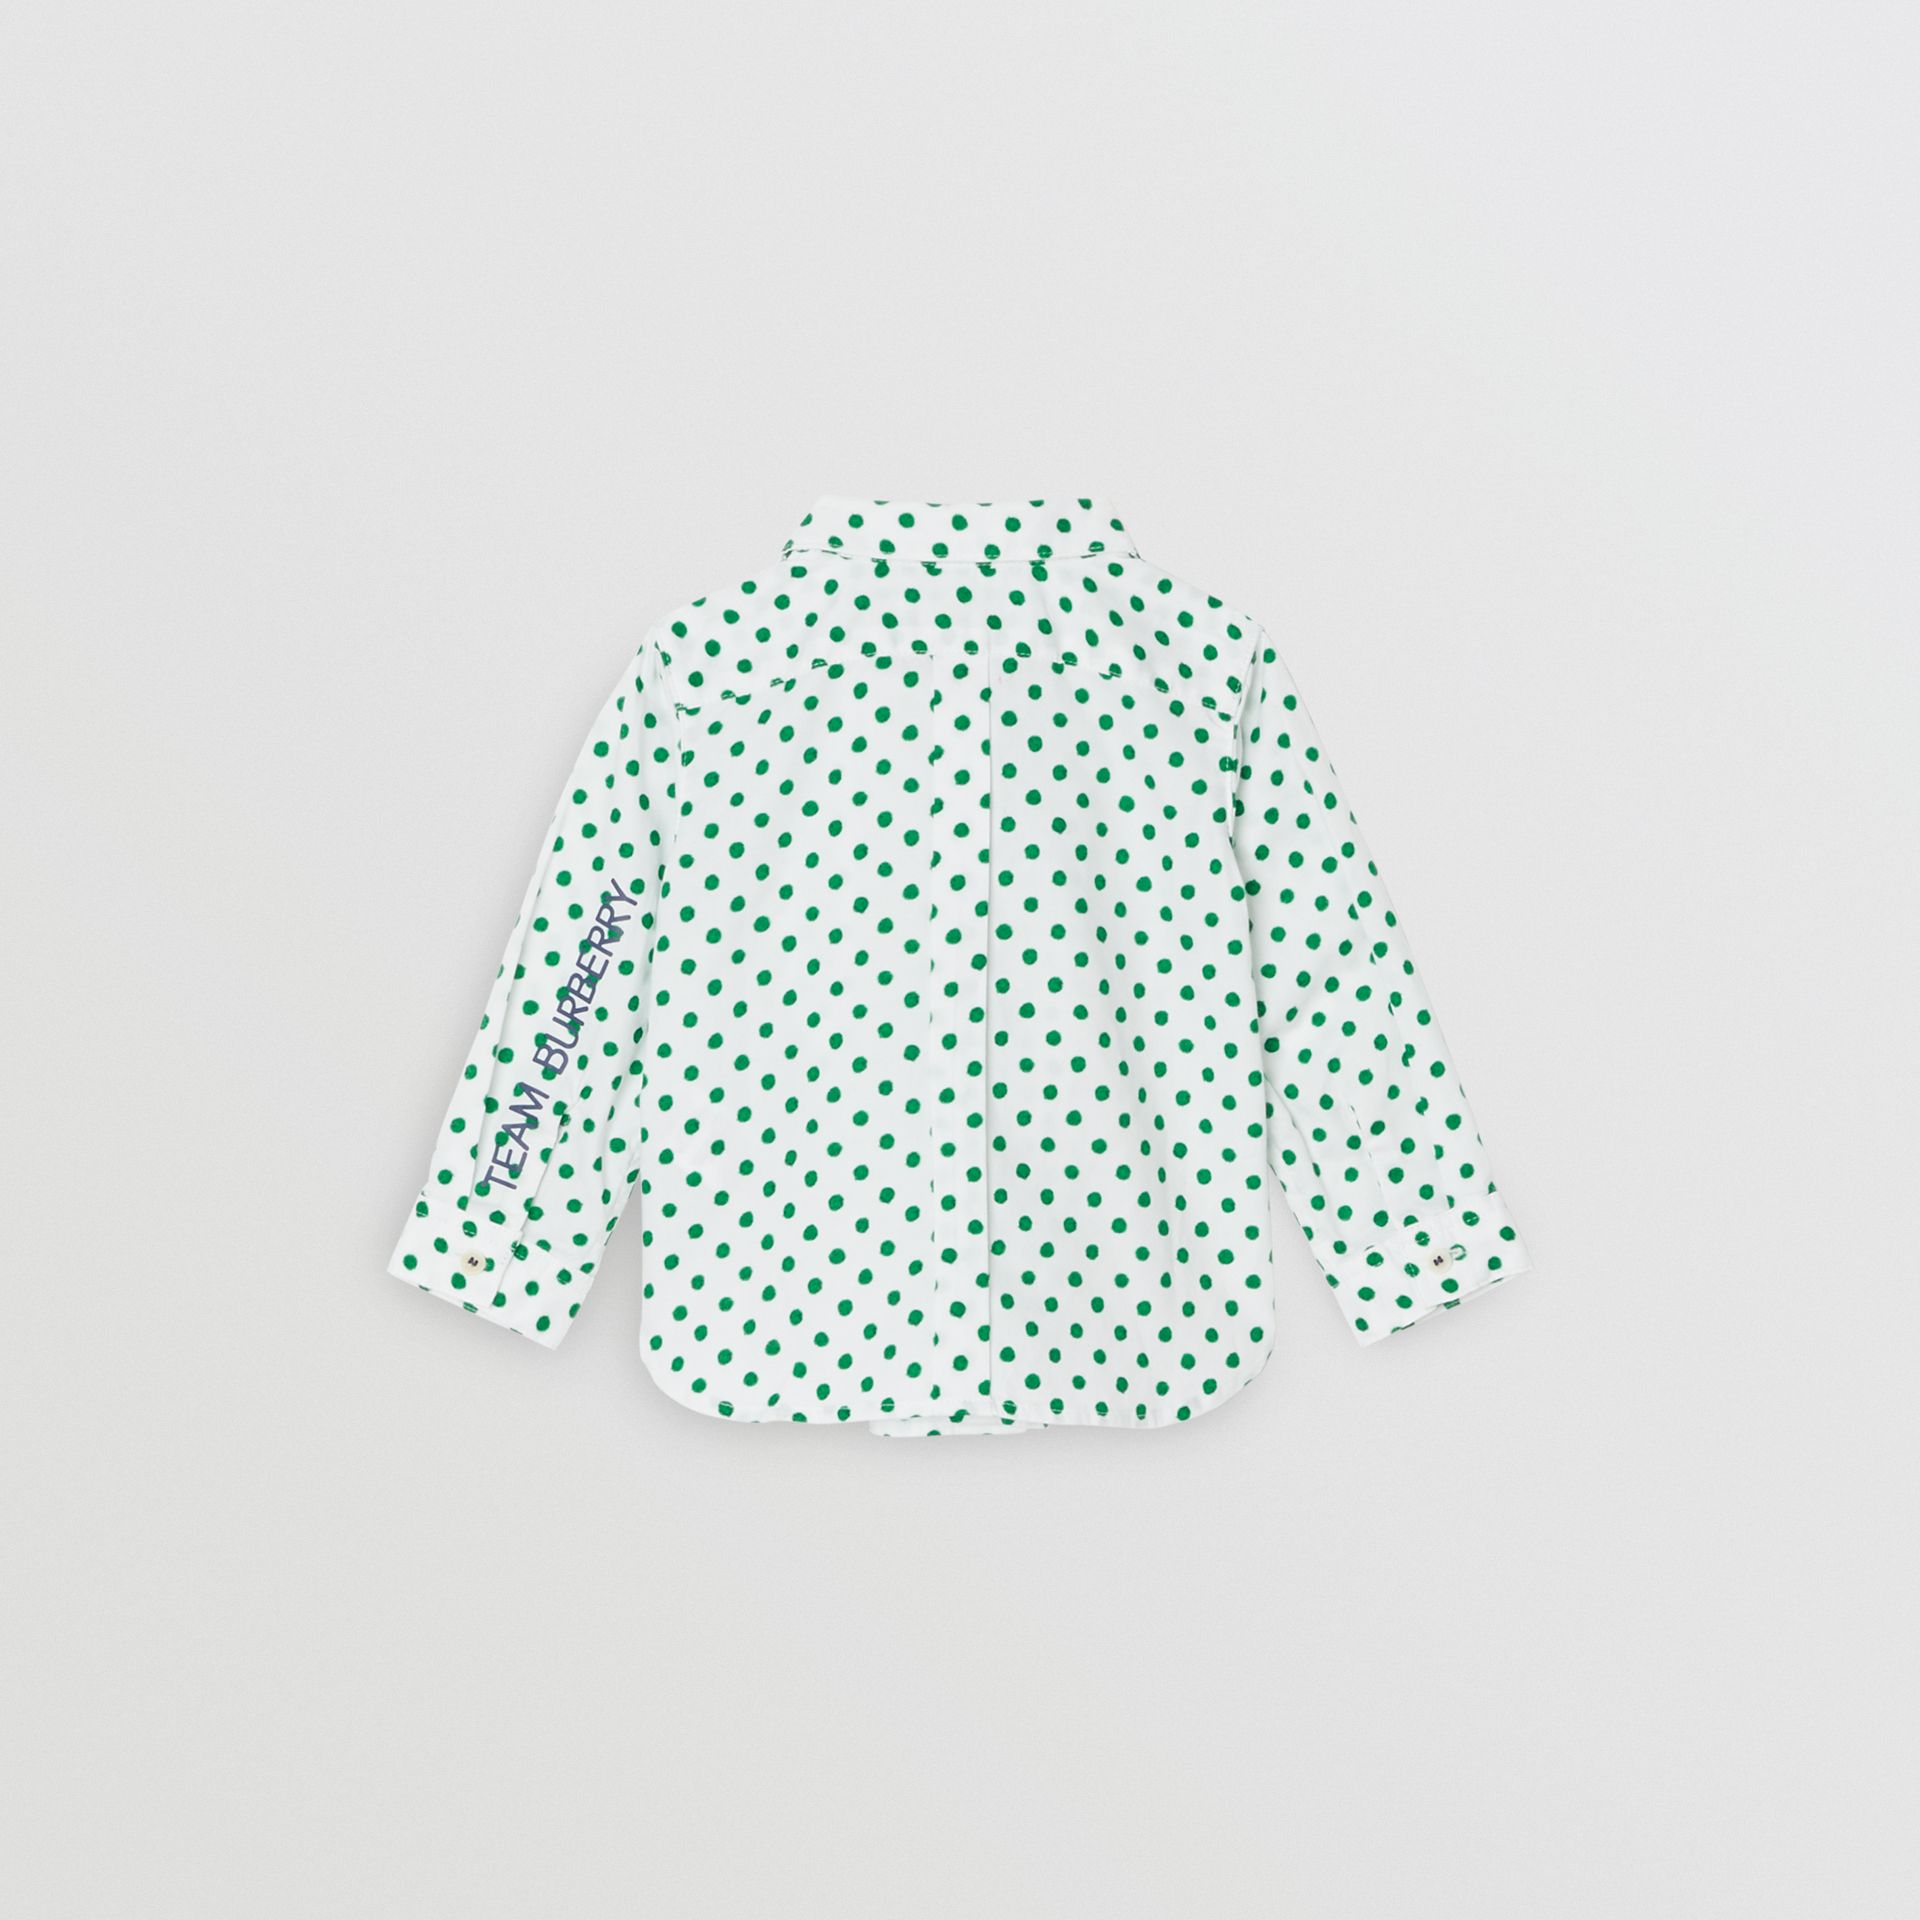 Polka Dot Cotton Oxford Shirt in Emerald Green - Children | Burberry Hong Kong - gallery image 3